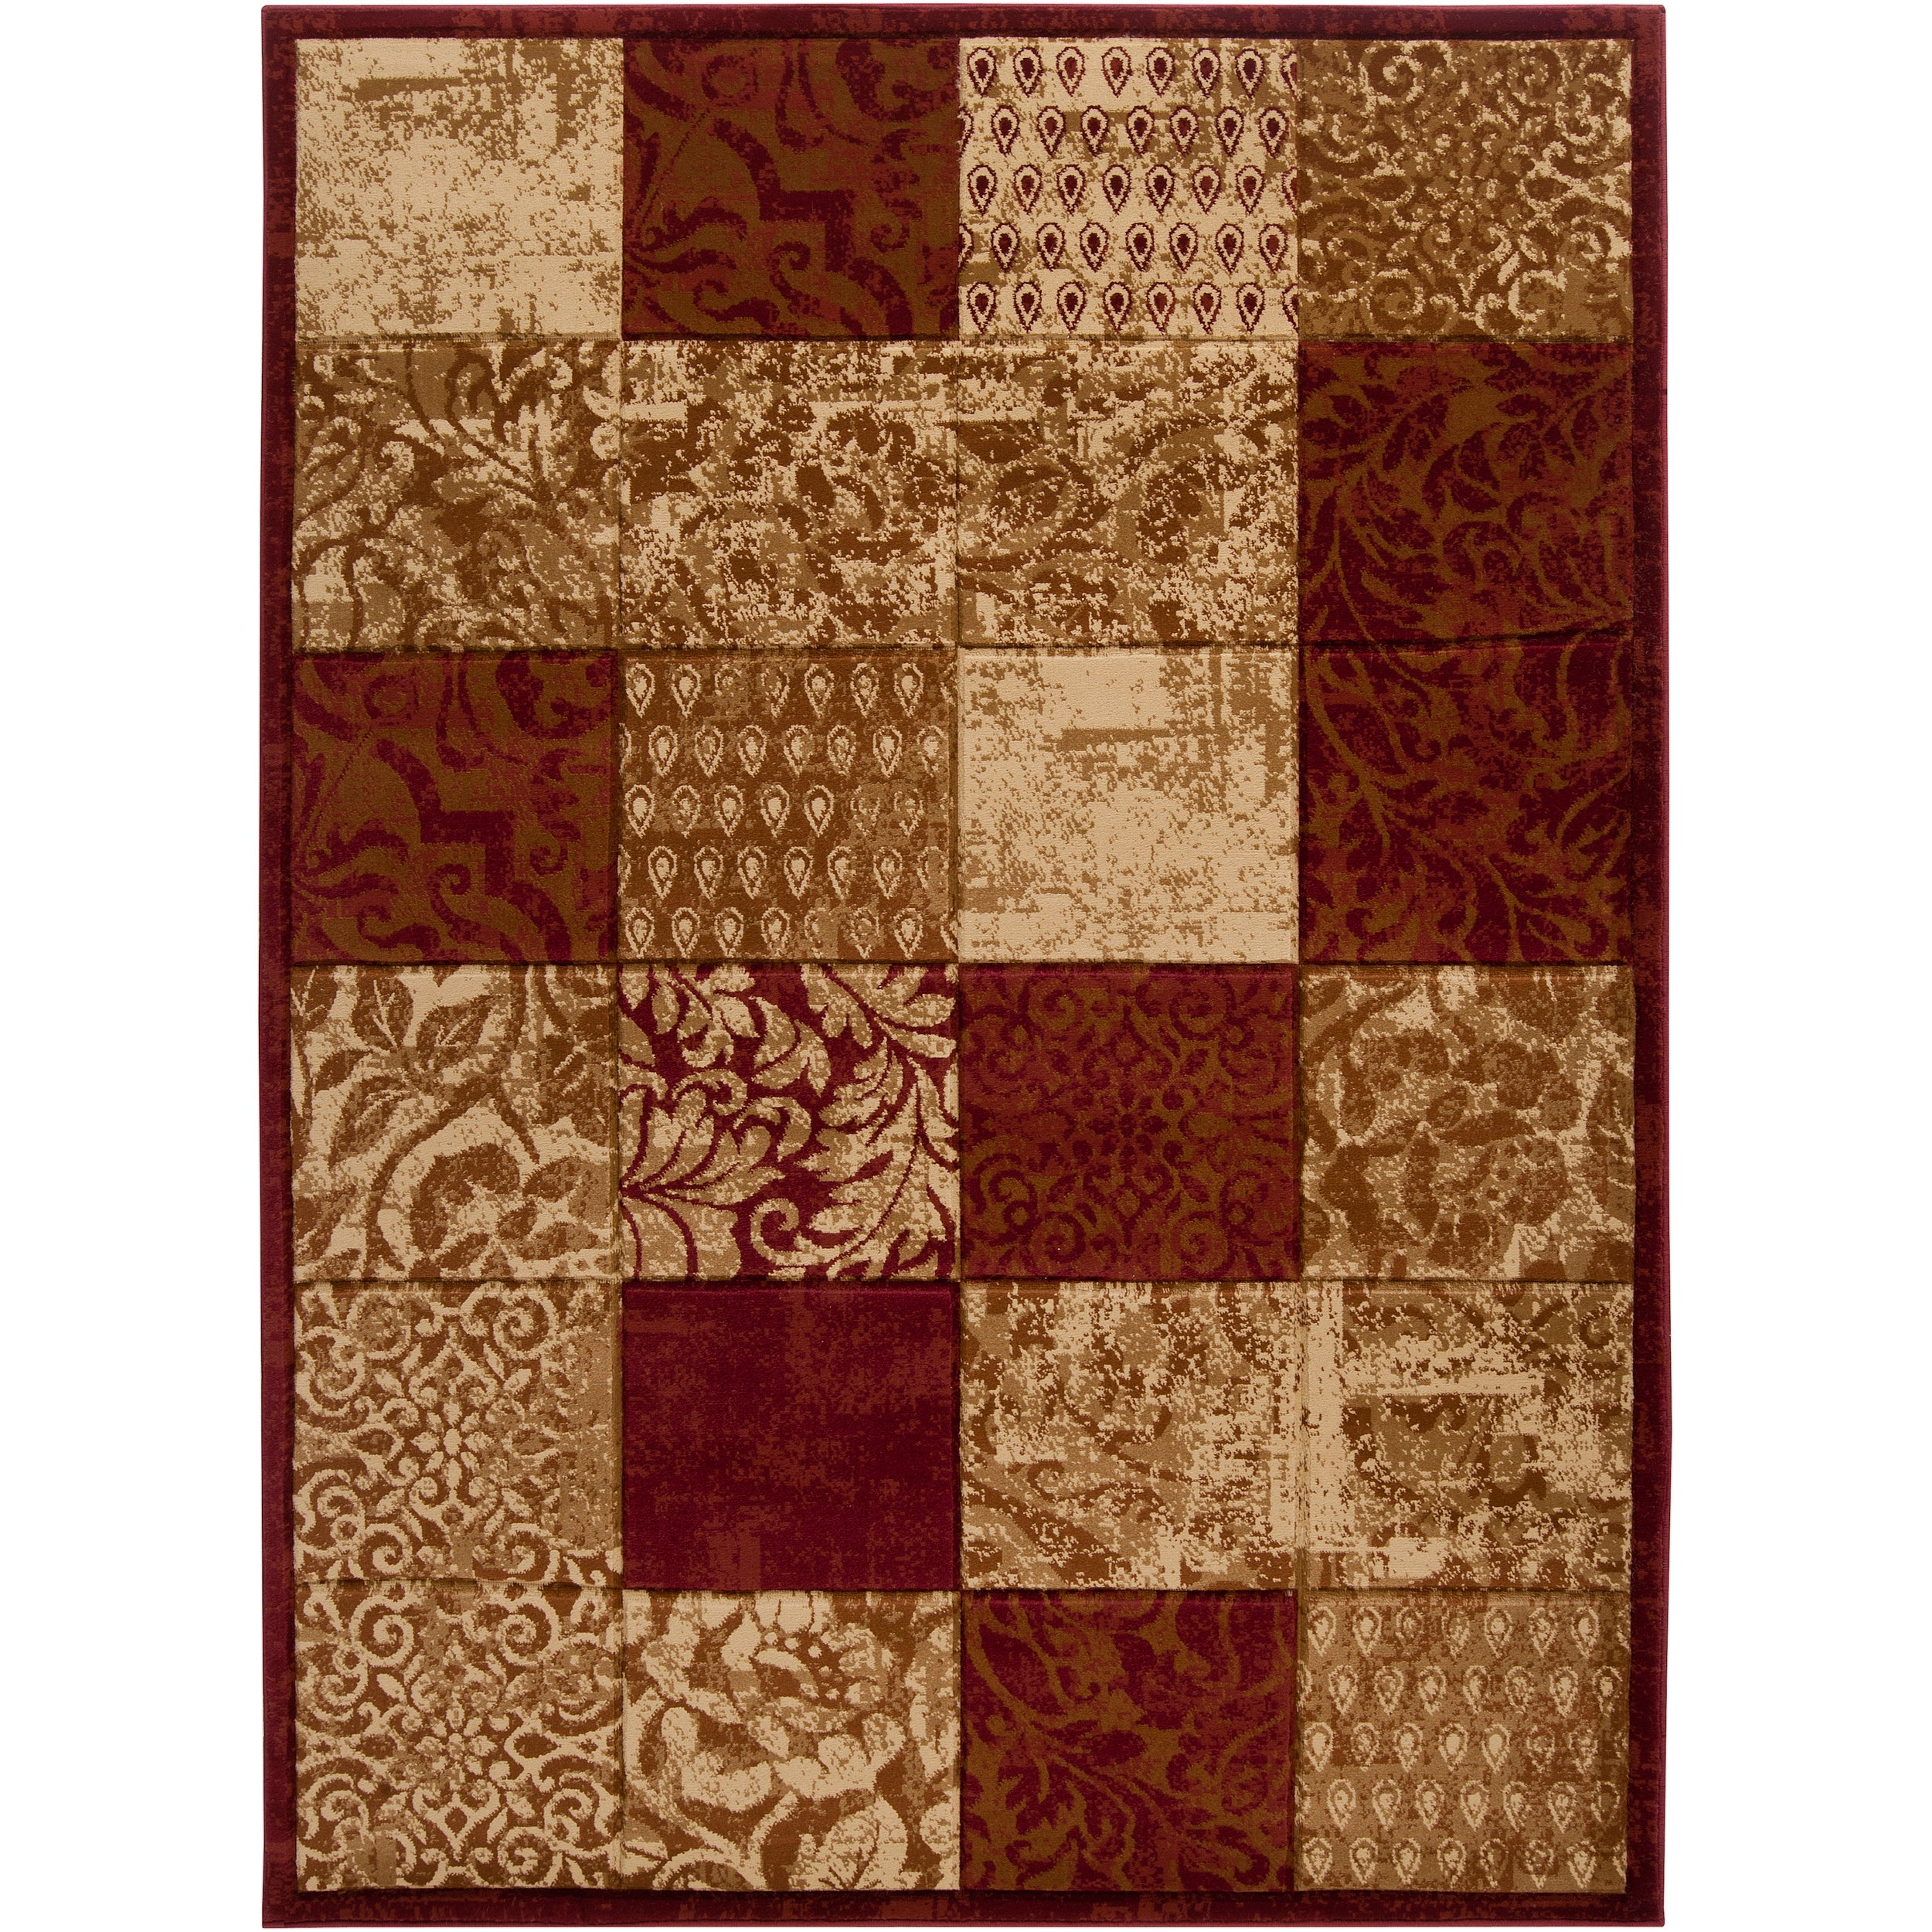 Hand-carved Artistic Weavers Multicolored Burgundy Shangle Rug (7'10 x 10'3)